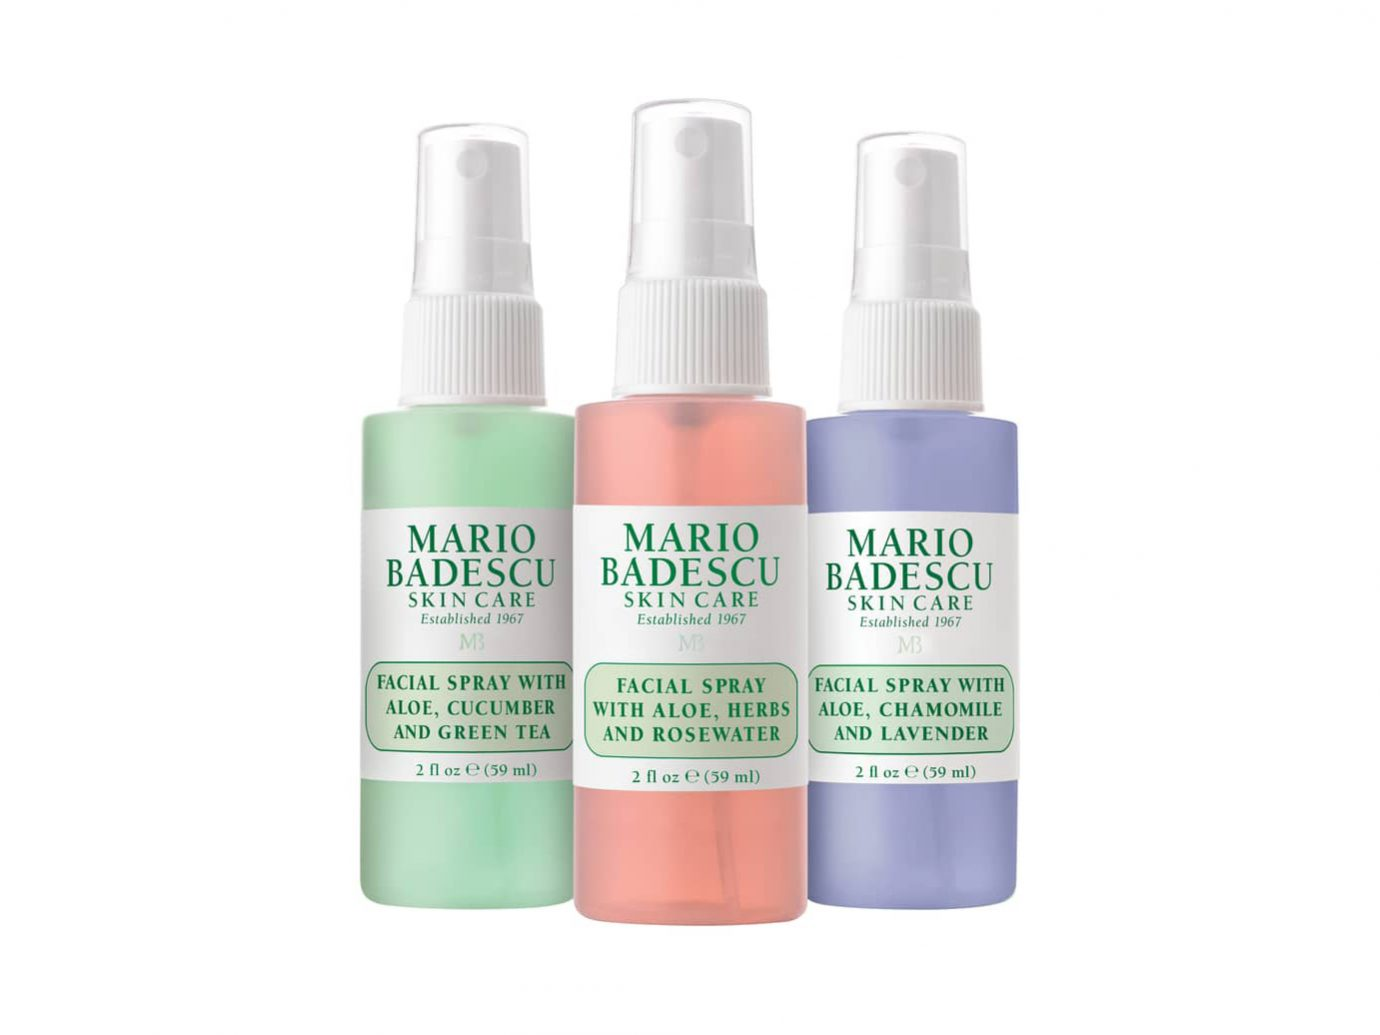 Mario Badescu Facial Spray Trio